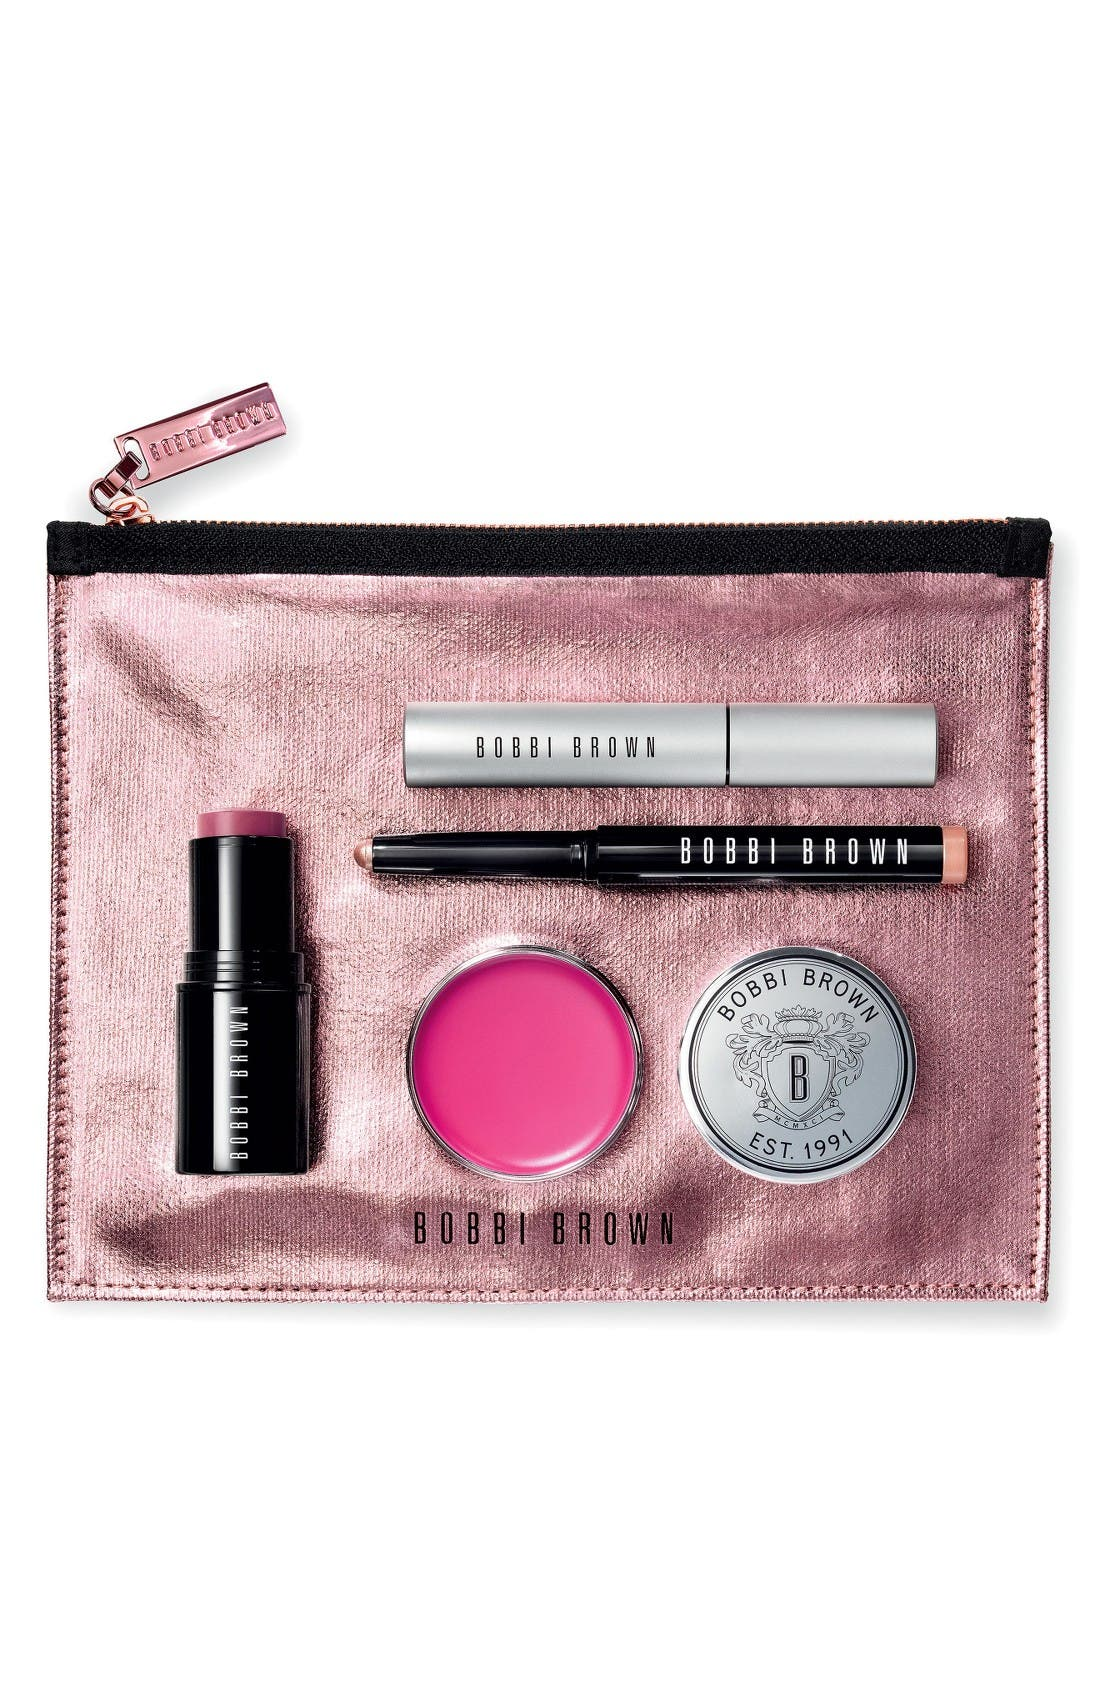 Main Image - Bobbi Brown Style File Off Duty Eye, Cheek & Lip Kit (Nordstrom Exclusive) ($140 value)